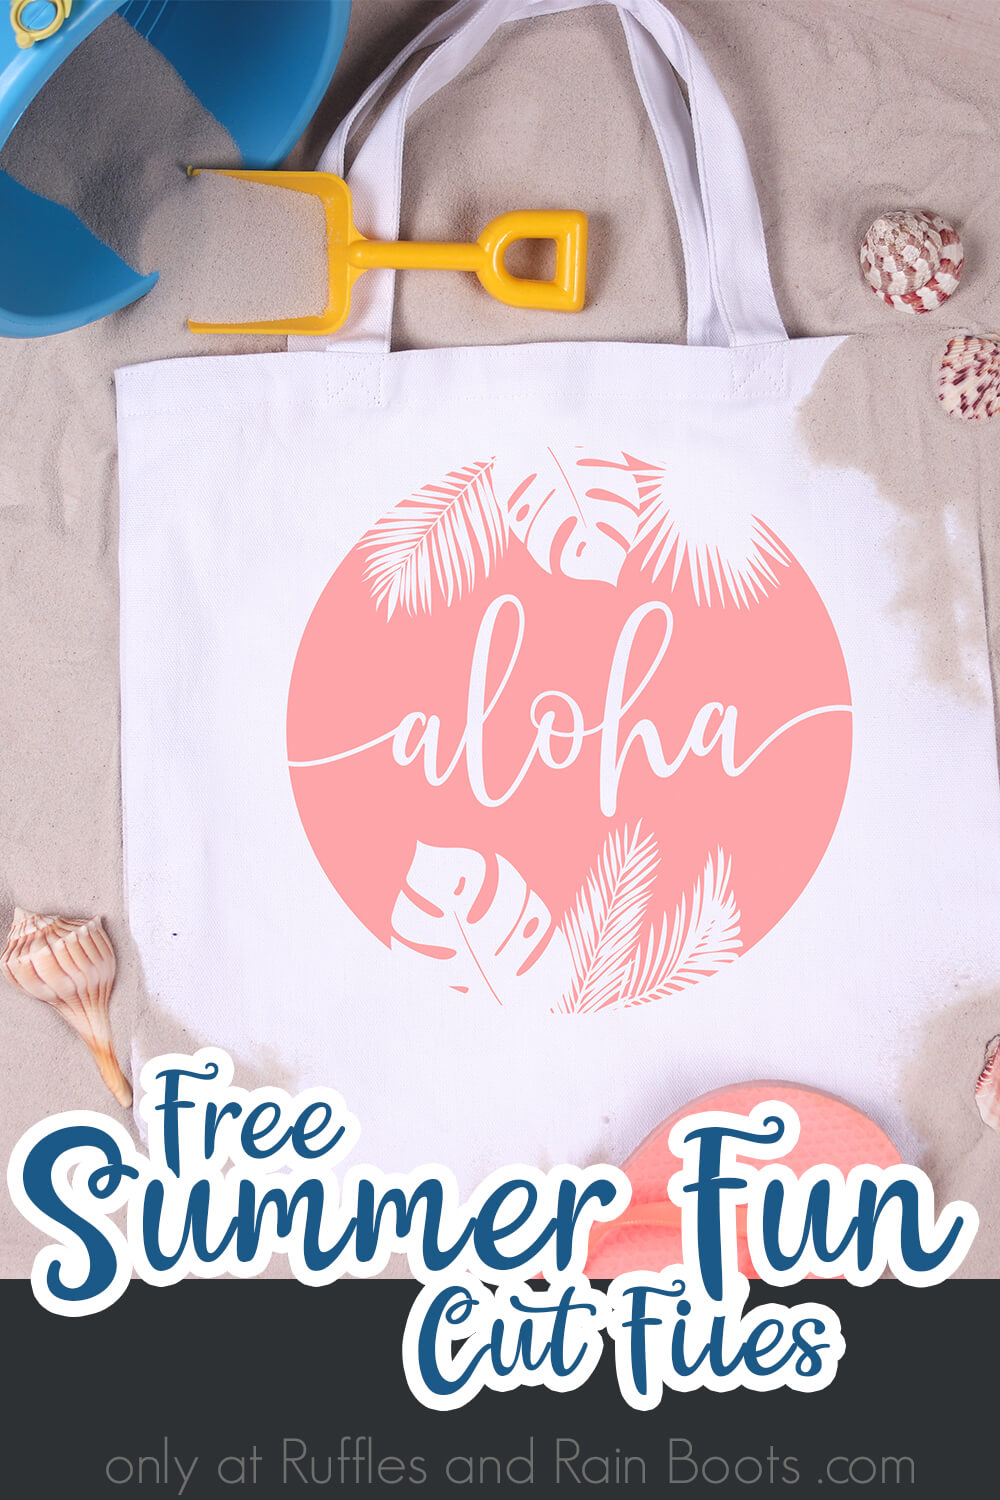 aloha free summer SVG for cutting machines on a beach bag on a bed of sand with text which reads free summer fun cut files